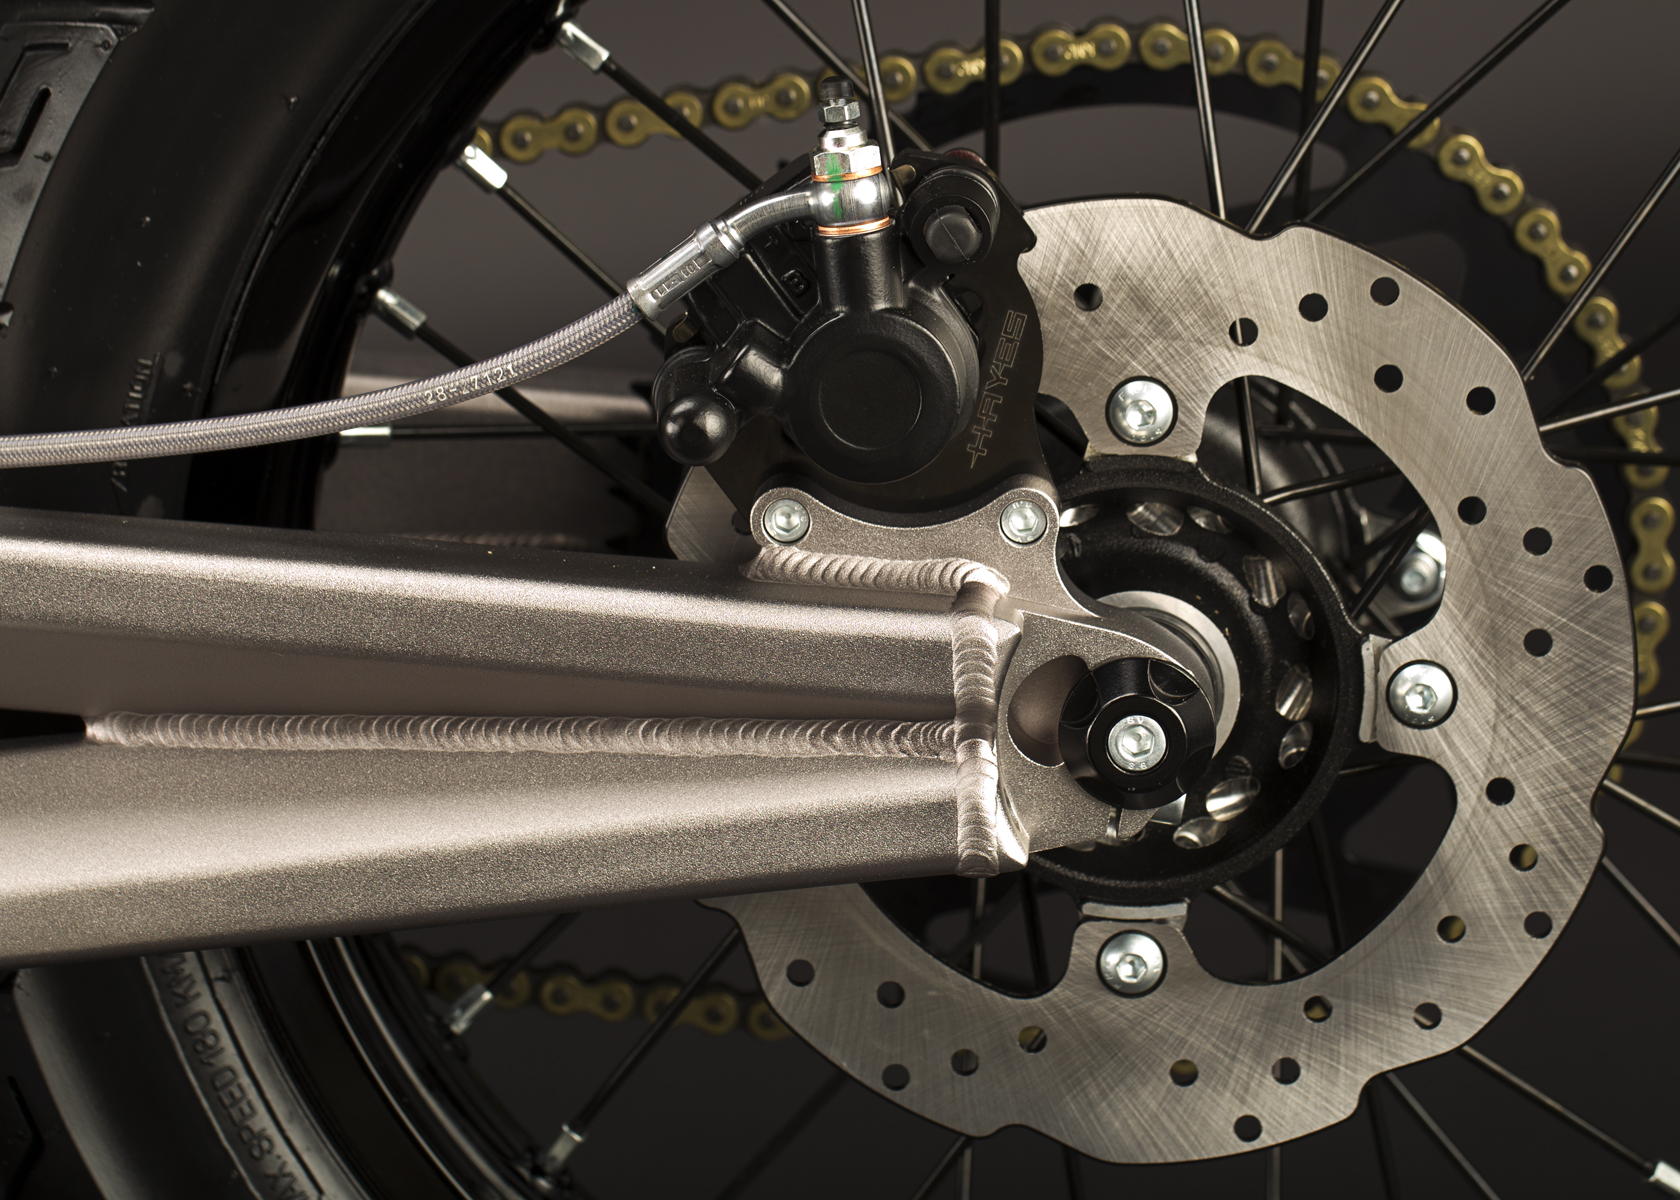 2011 Zero XU Electric Motorcycle: Back Brake